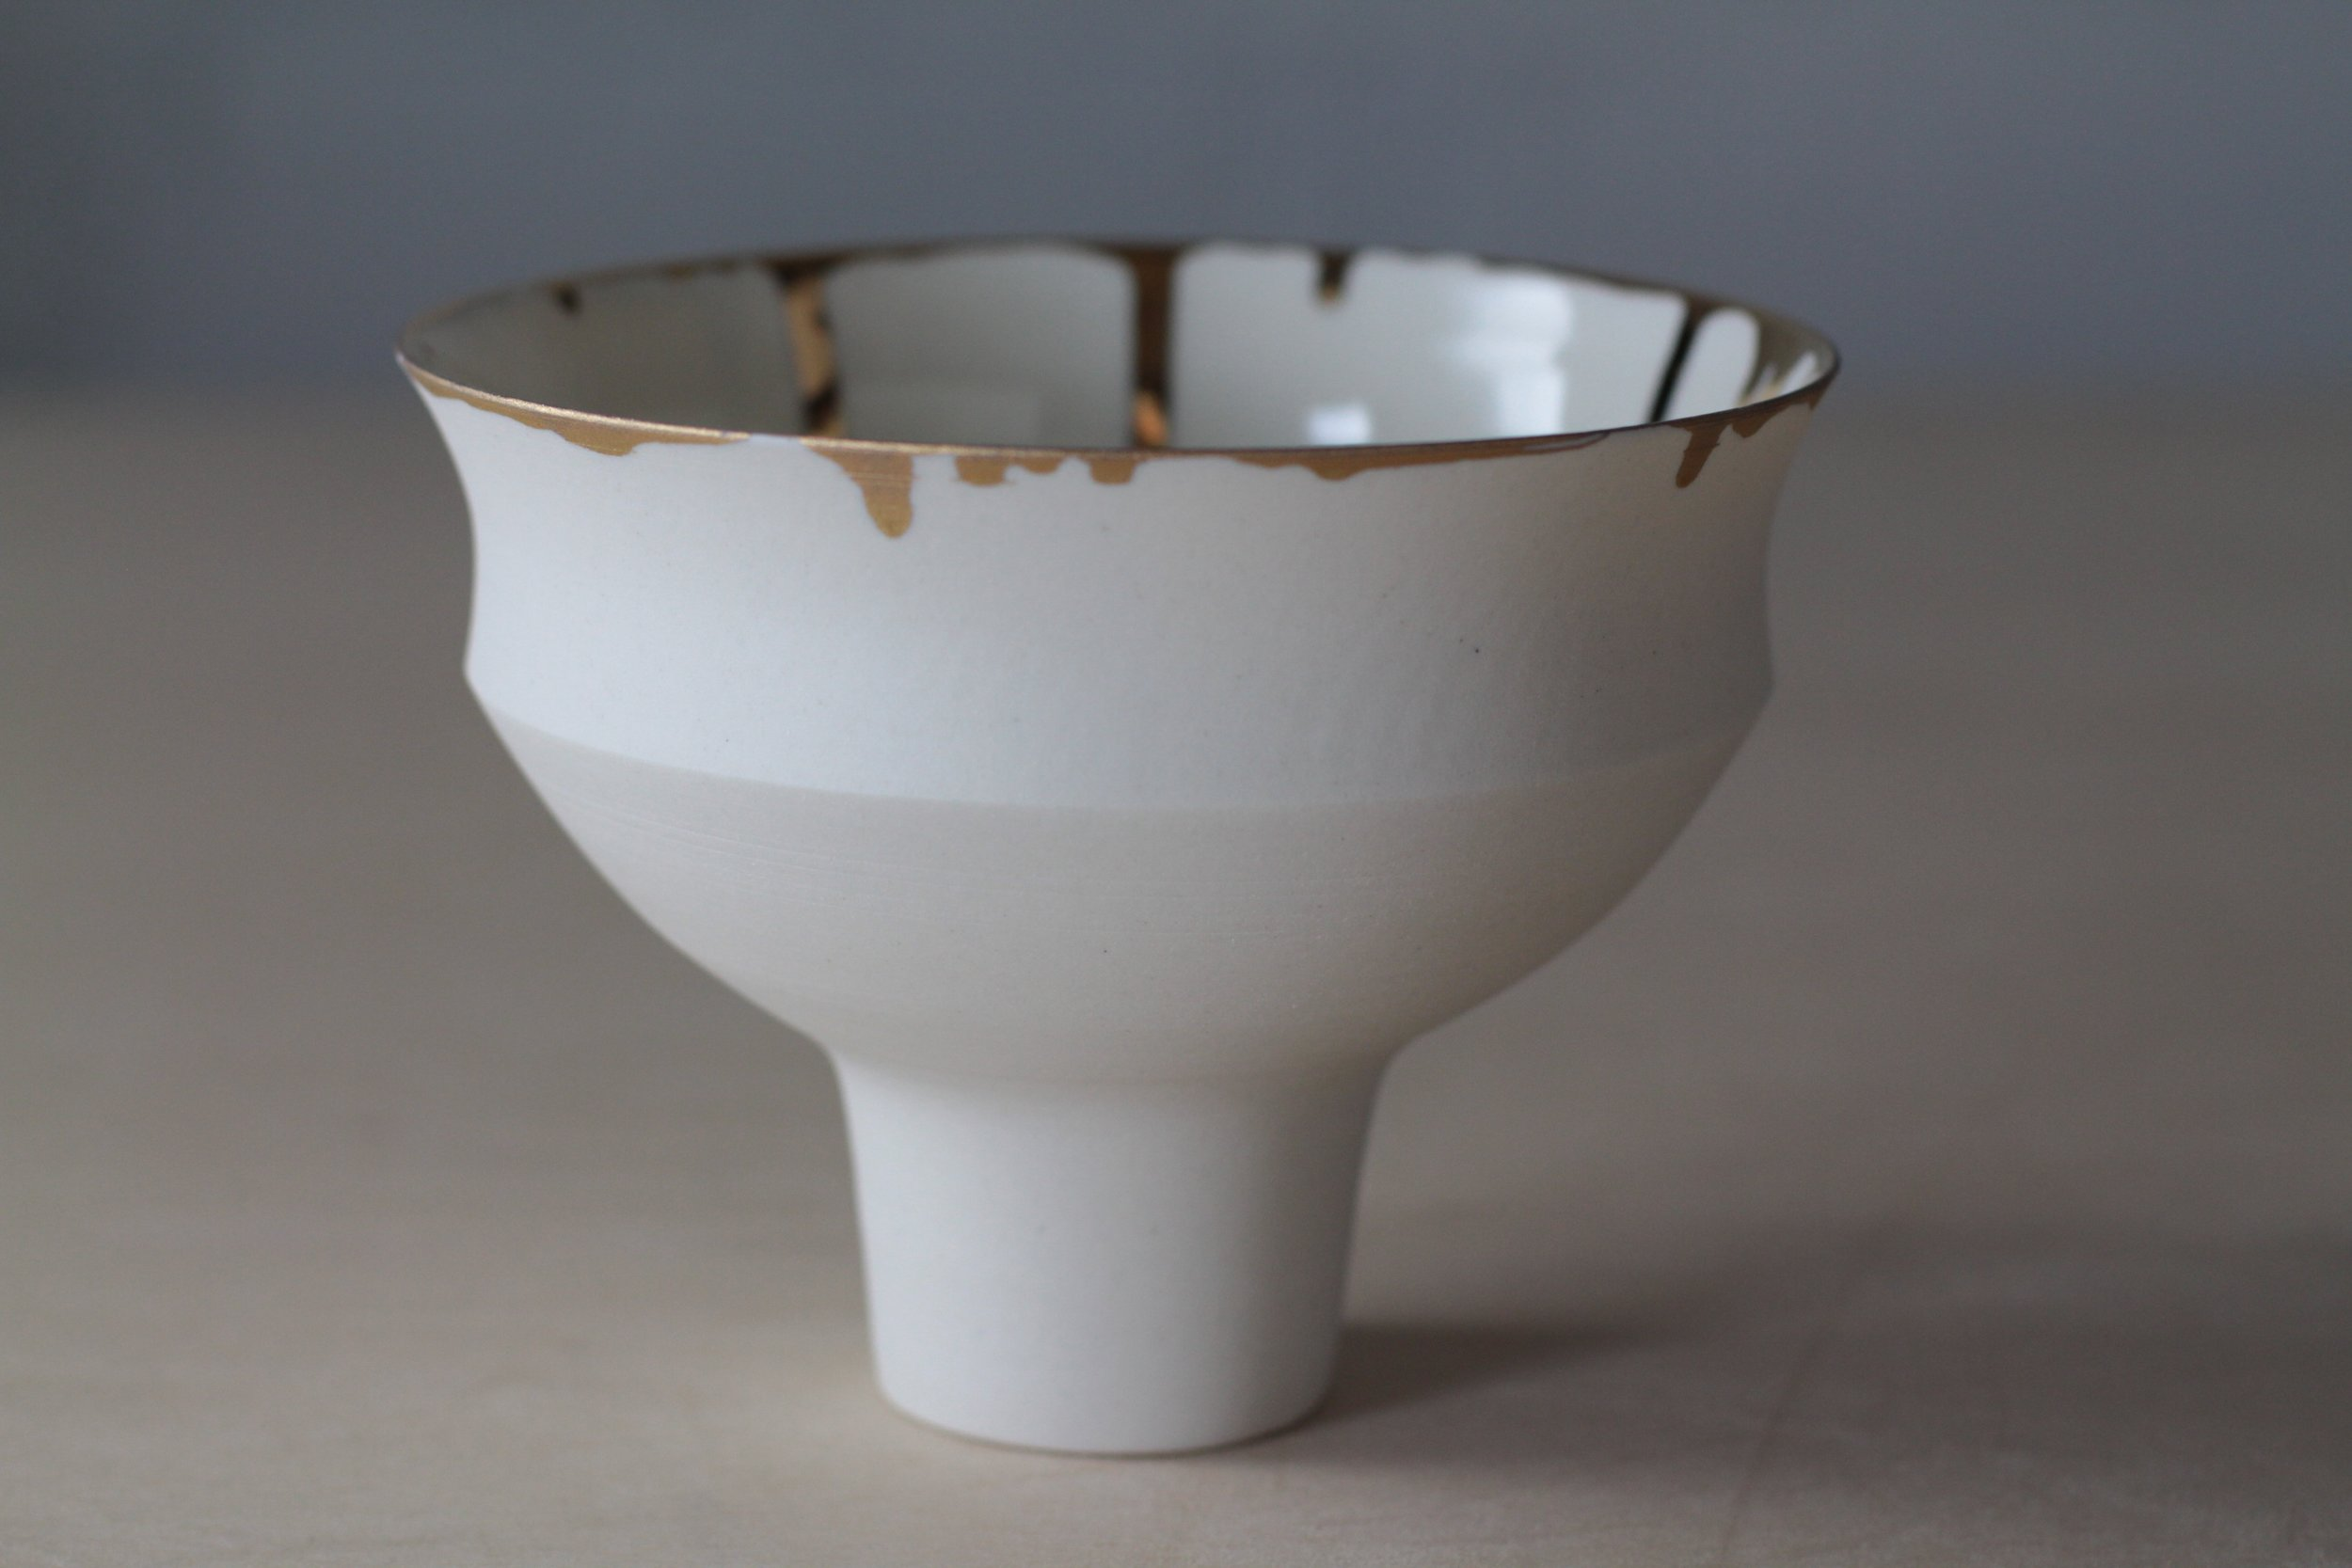 Porcelain ceramic white bowl with gold gilding by Lilith Rockett, Portland, Oregon